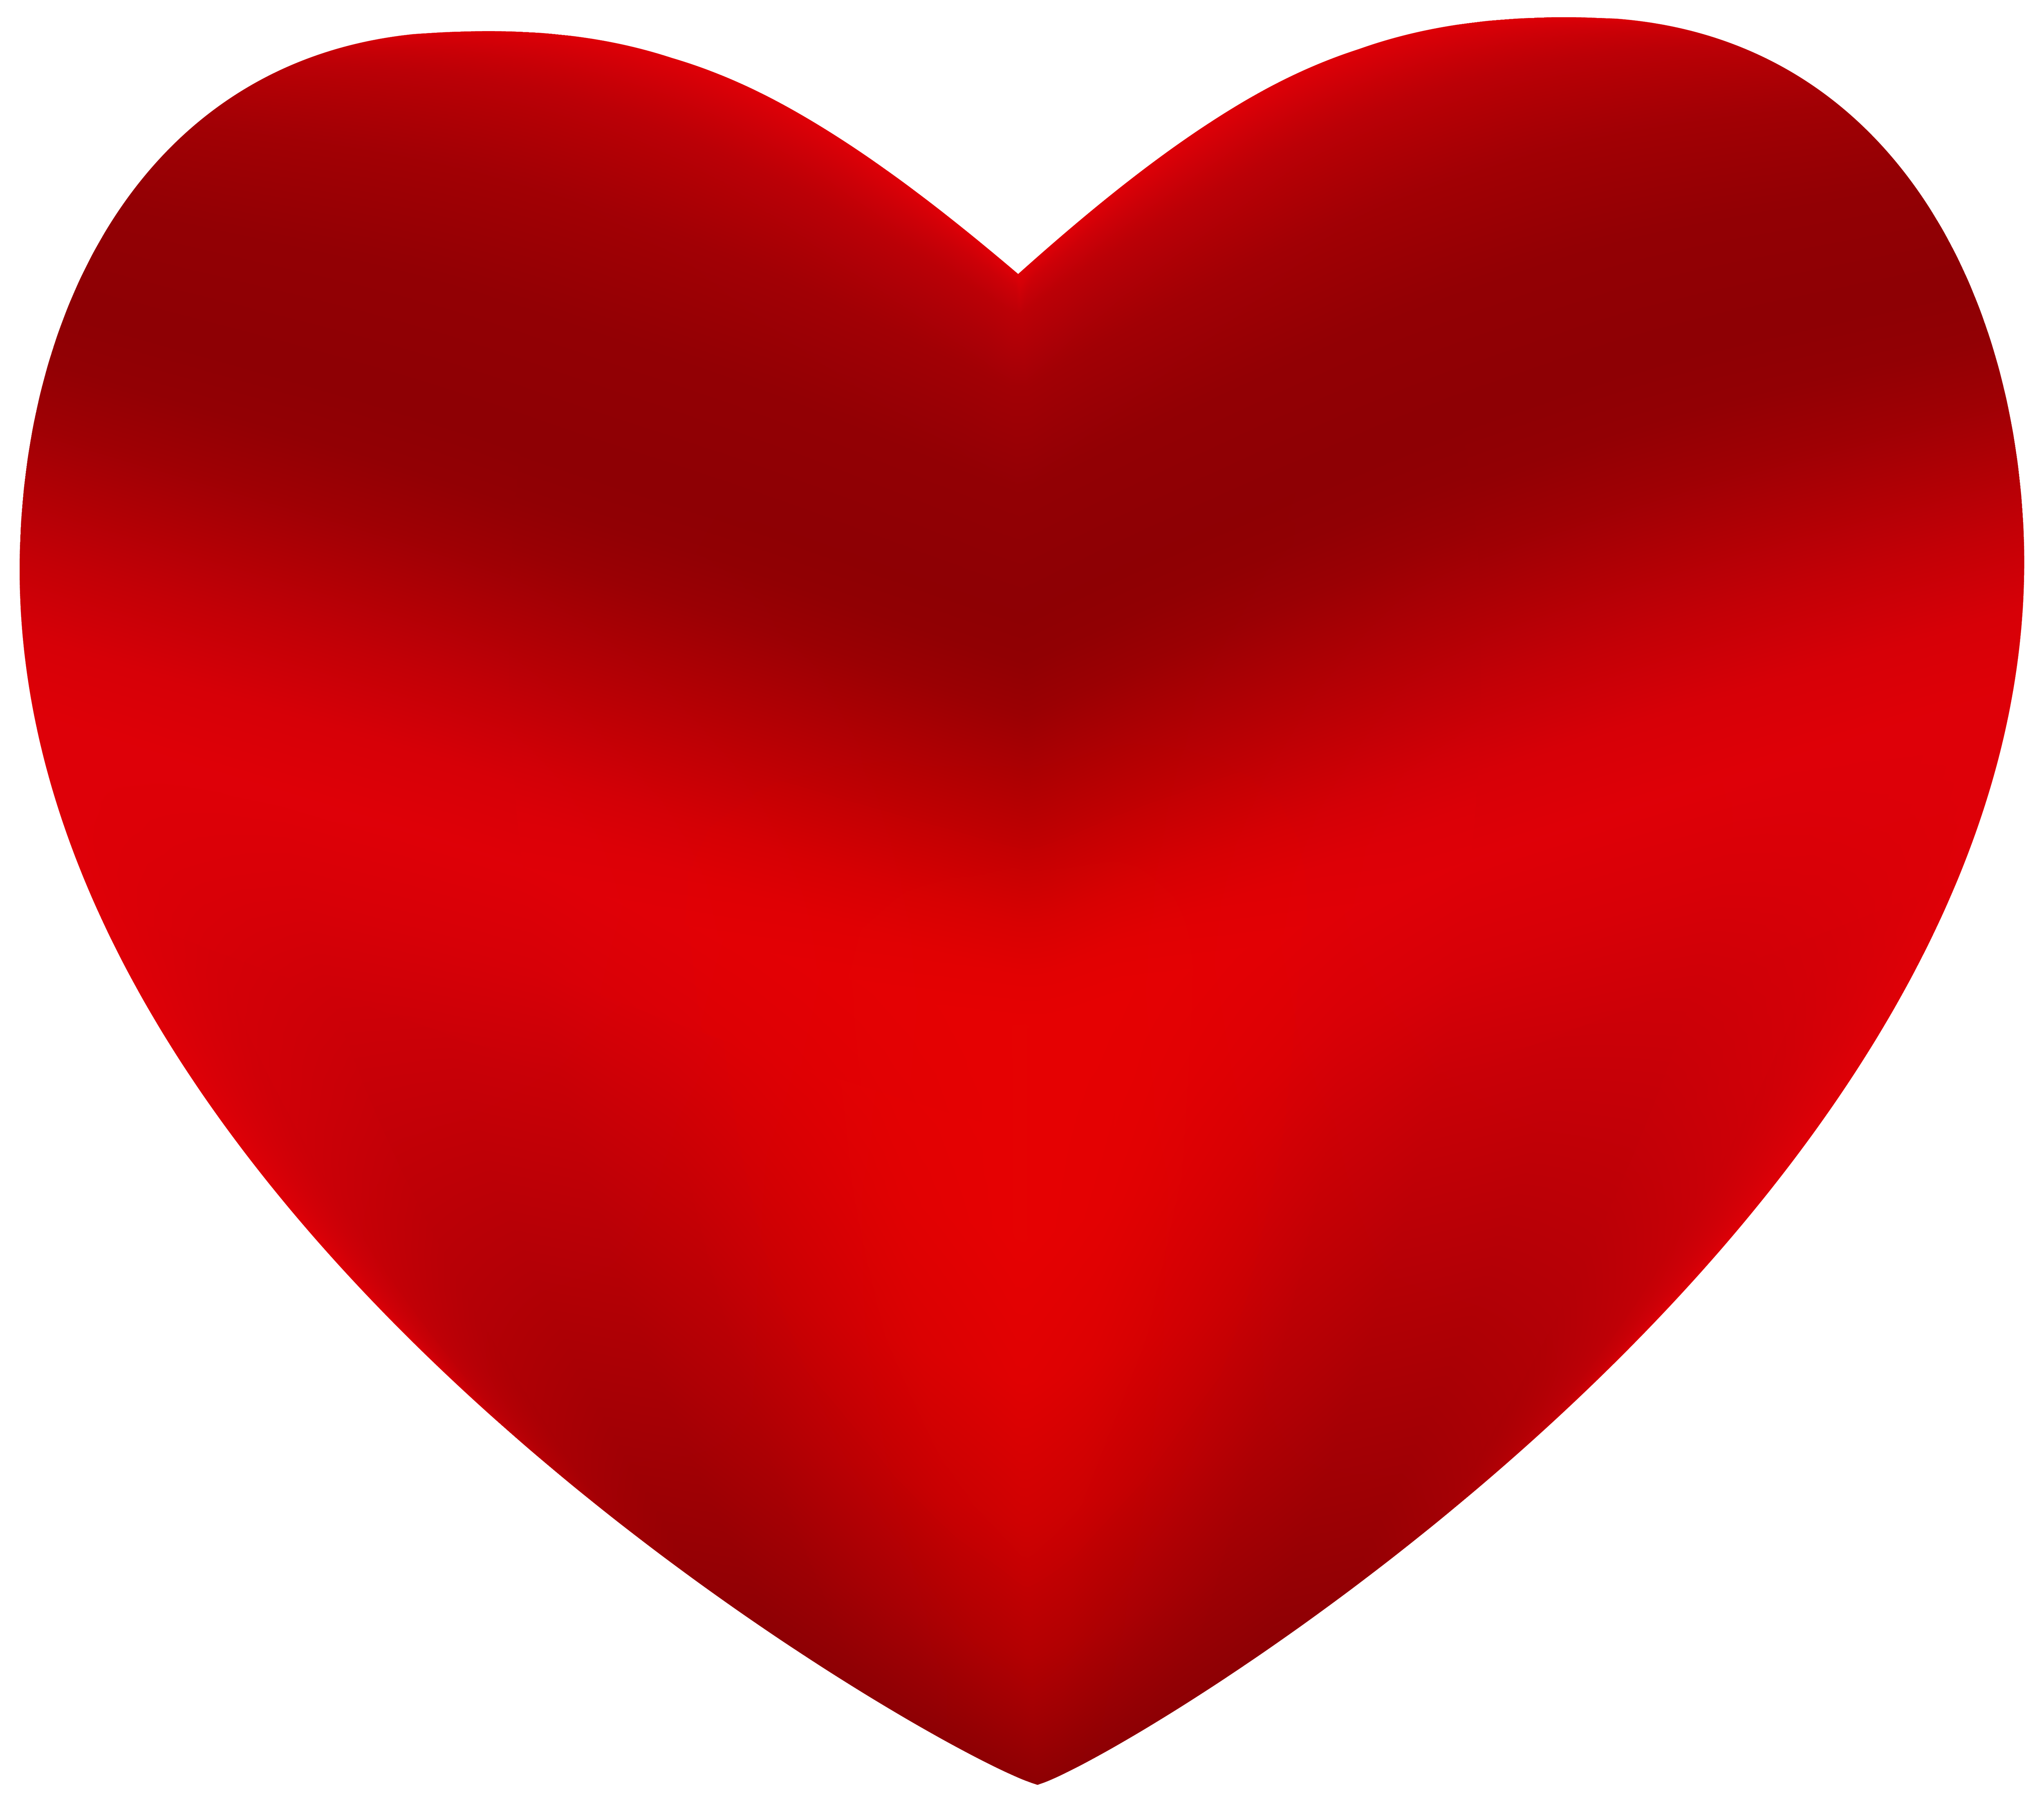 Heart Png - Beautiful Red Heart PNG Clipart